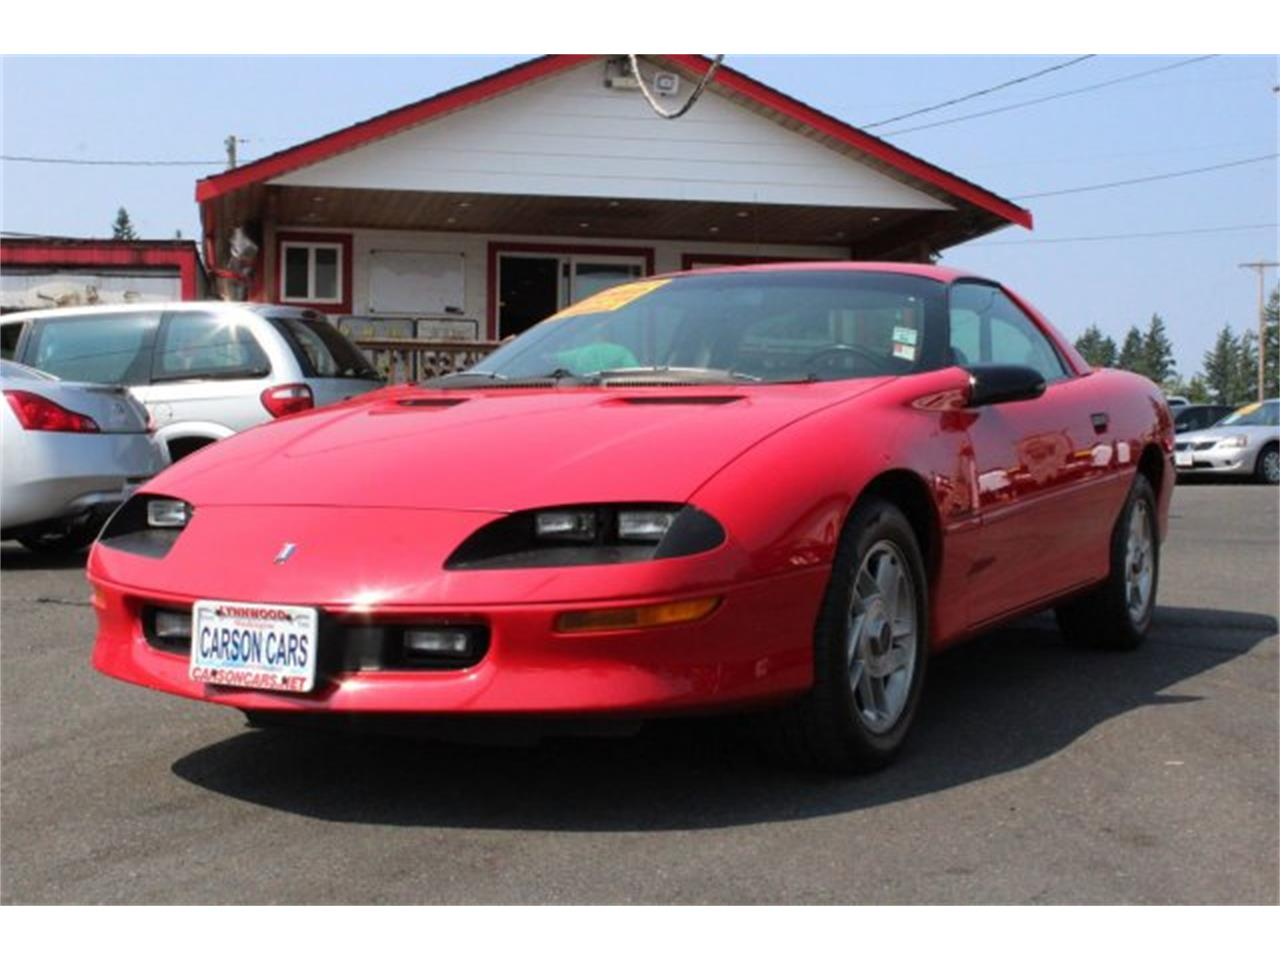 Large Picture of 1994 Camaro - $5,995.00 Offered by Carson Cars - LHJ2